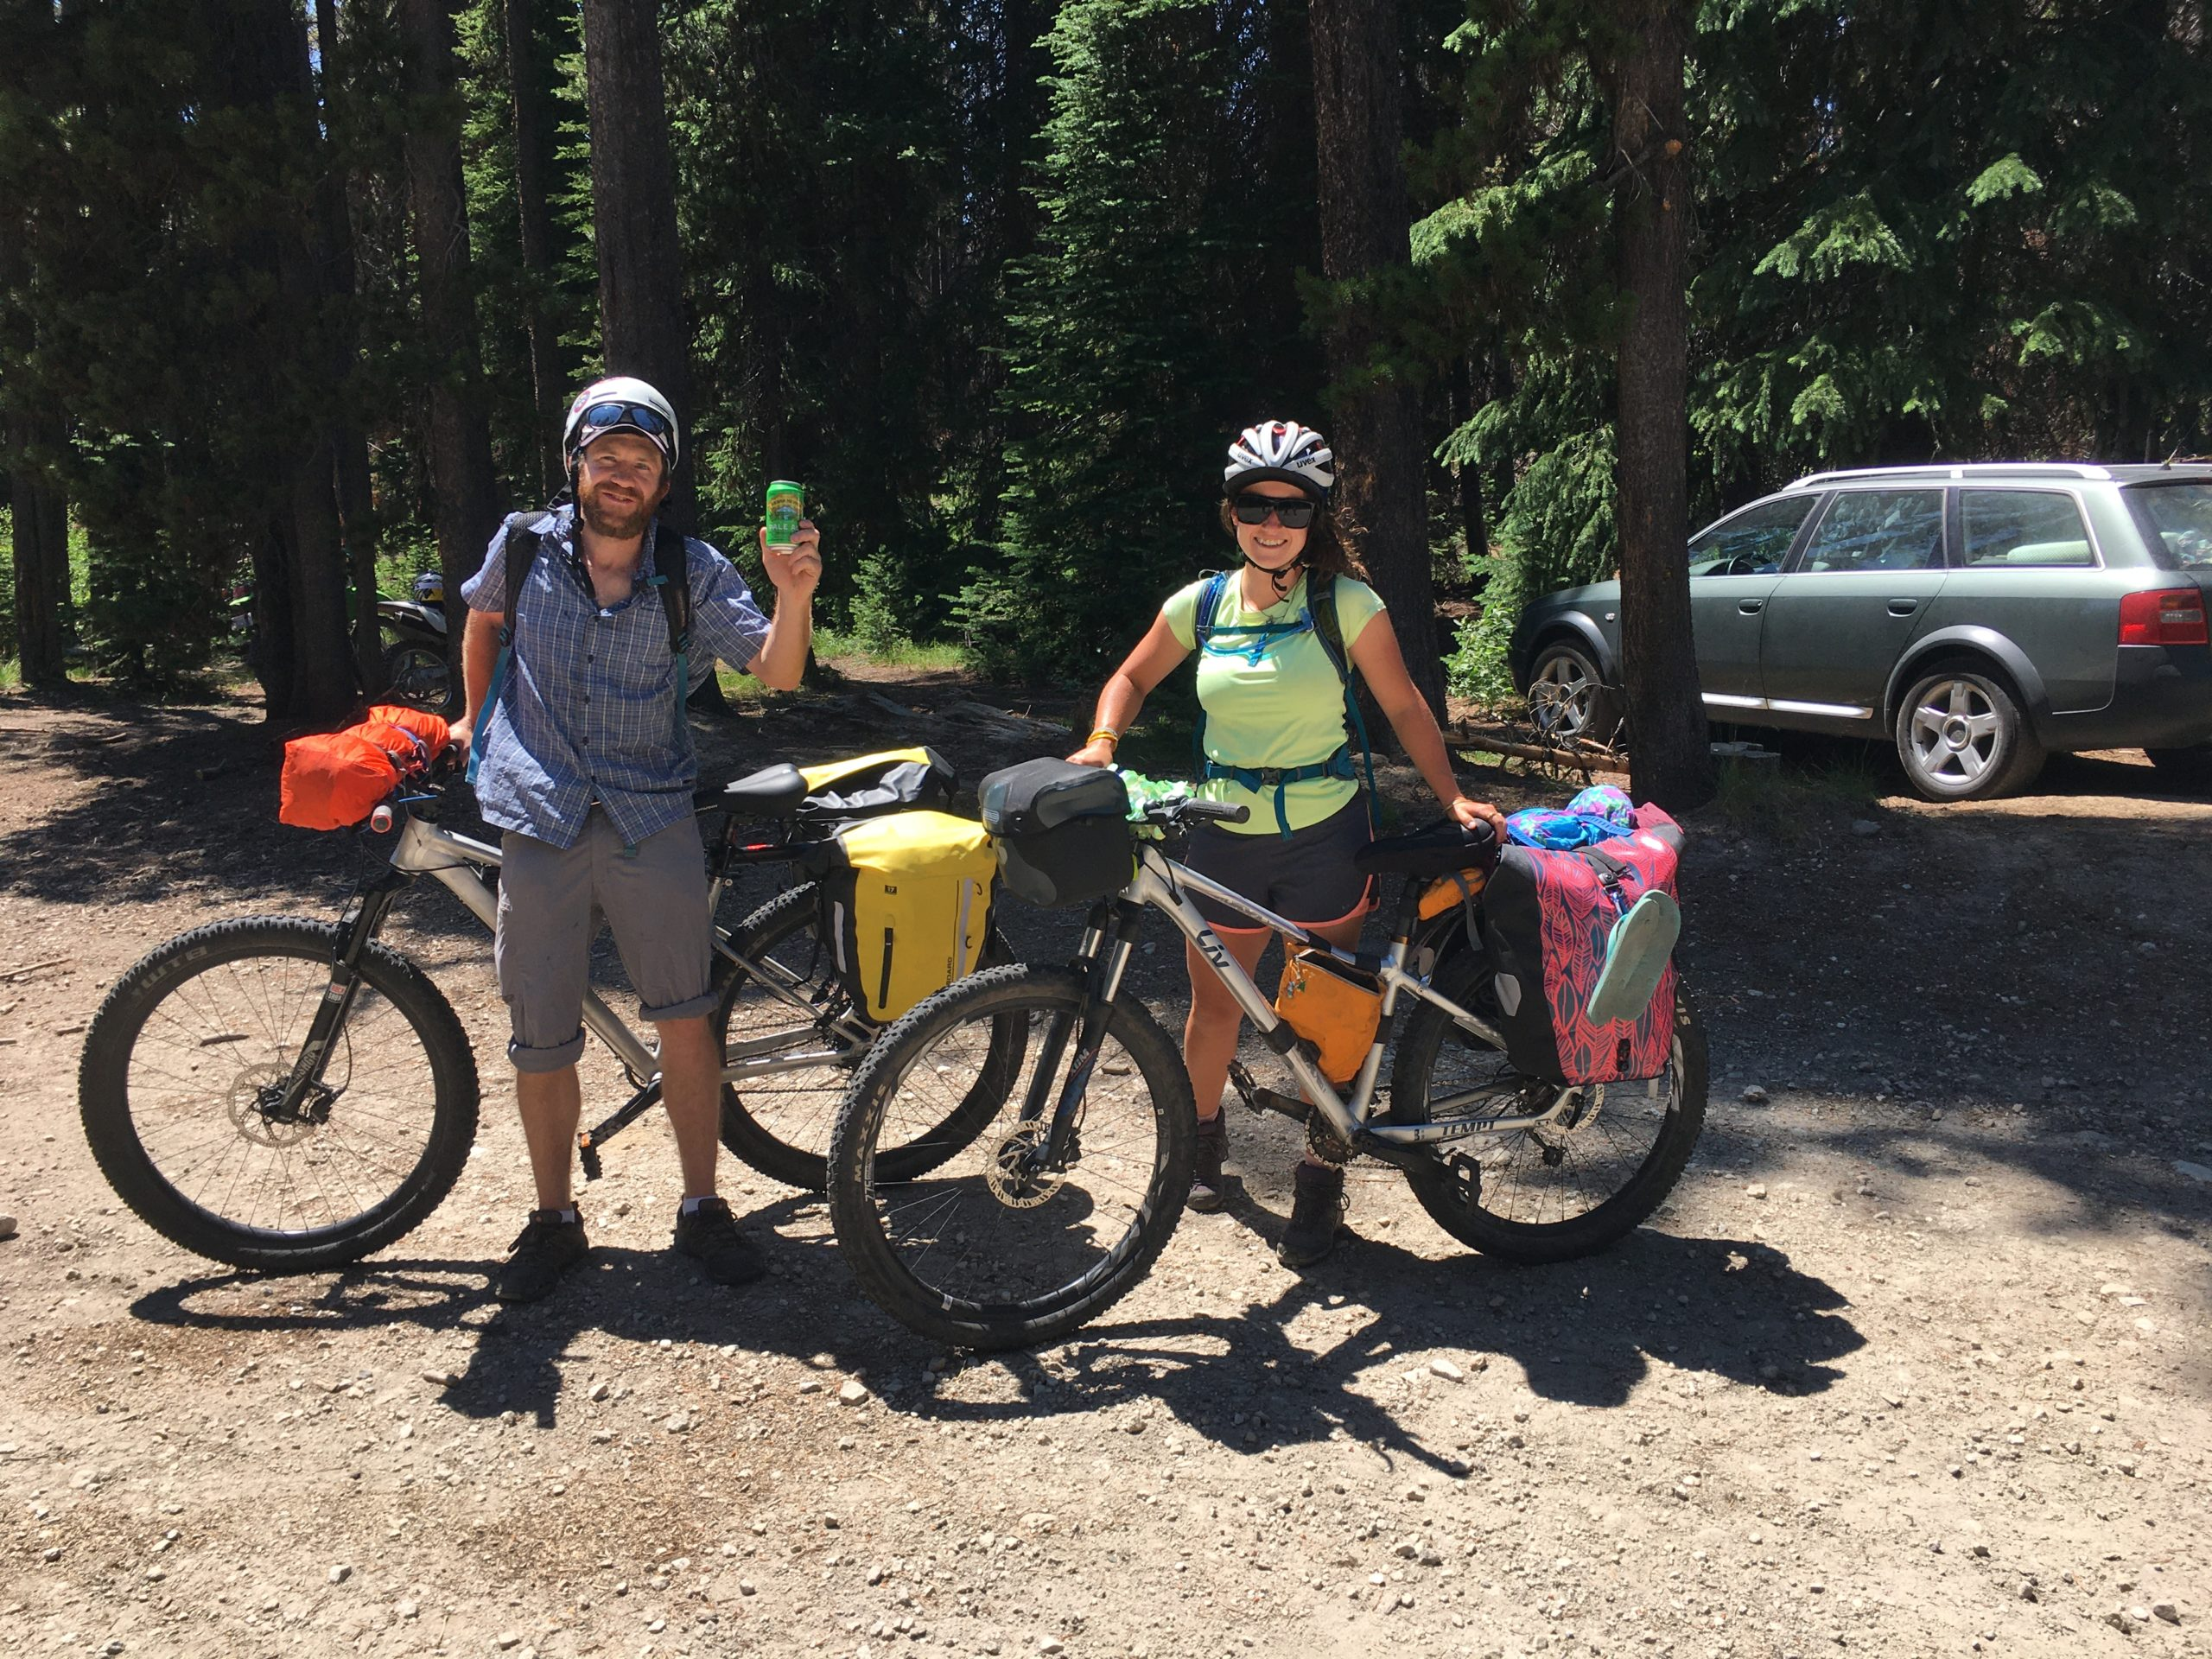 Rochelle and her partner Rob pose in front of their packed up bikes on the side of the road. Rob is holding up a can and cheering in the photo.